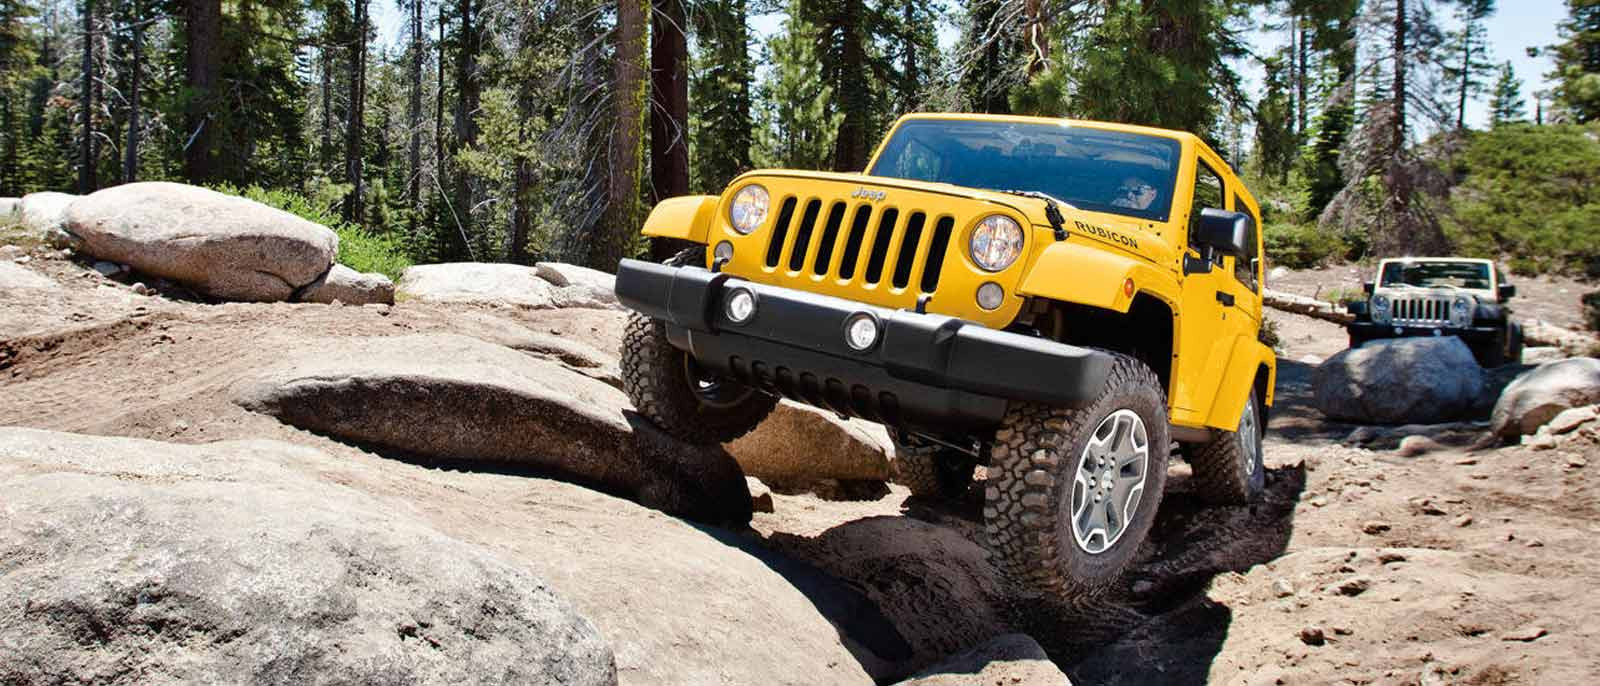 Jeep enthusiast lifestyle brand for Jeepers all about that Jeep.Life.